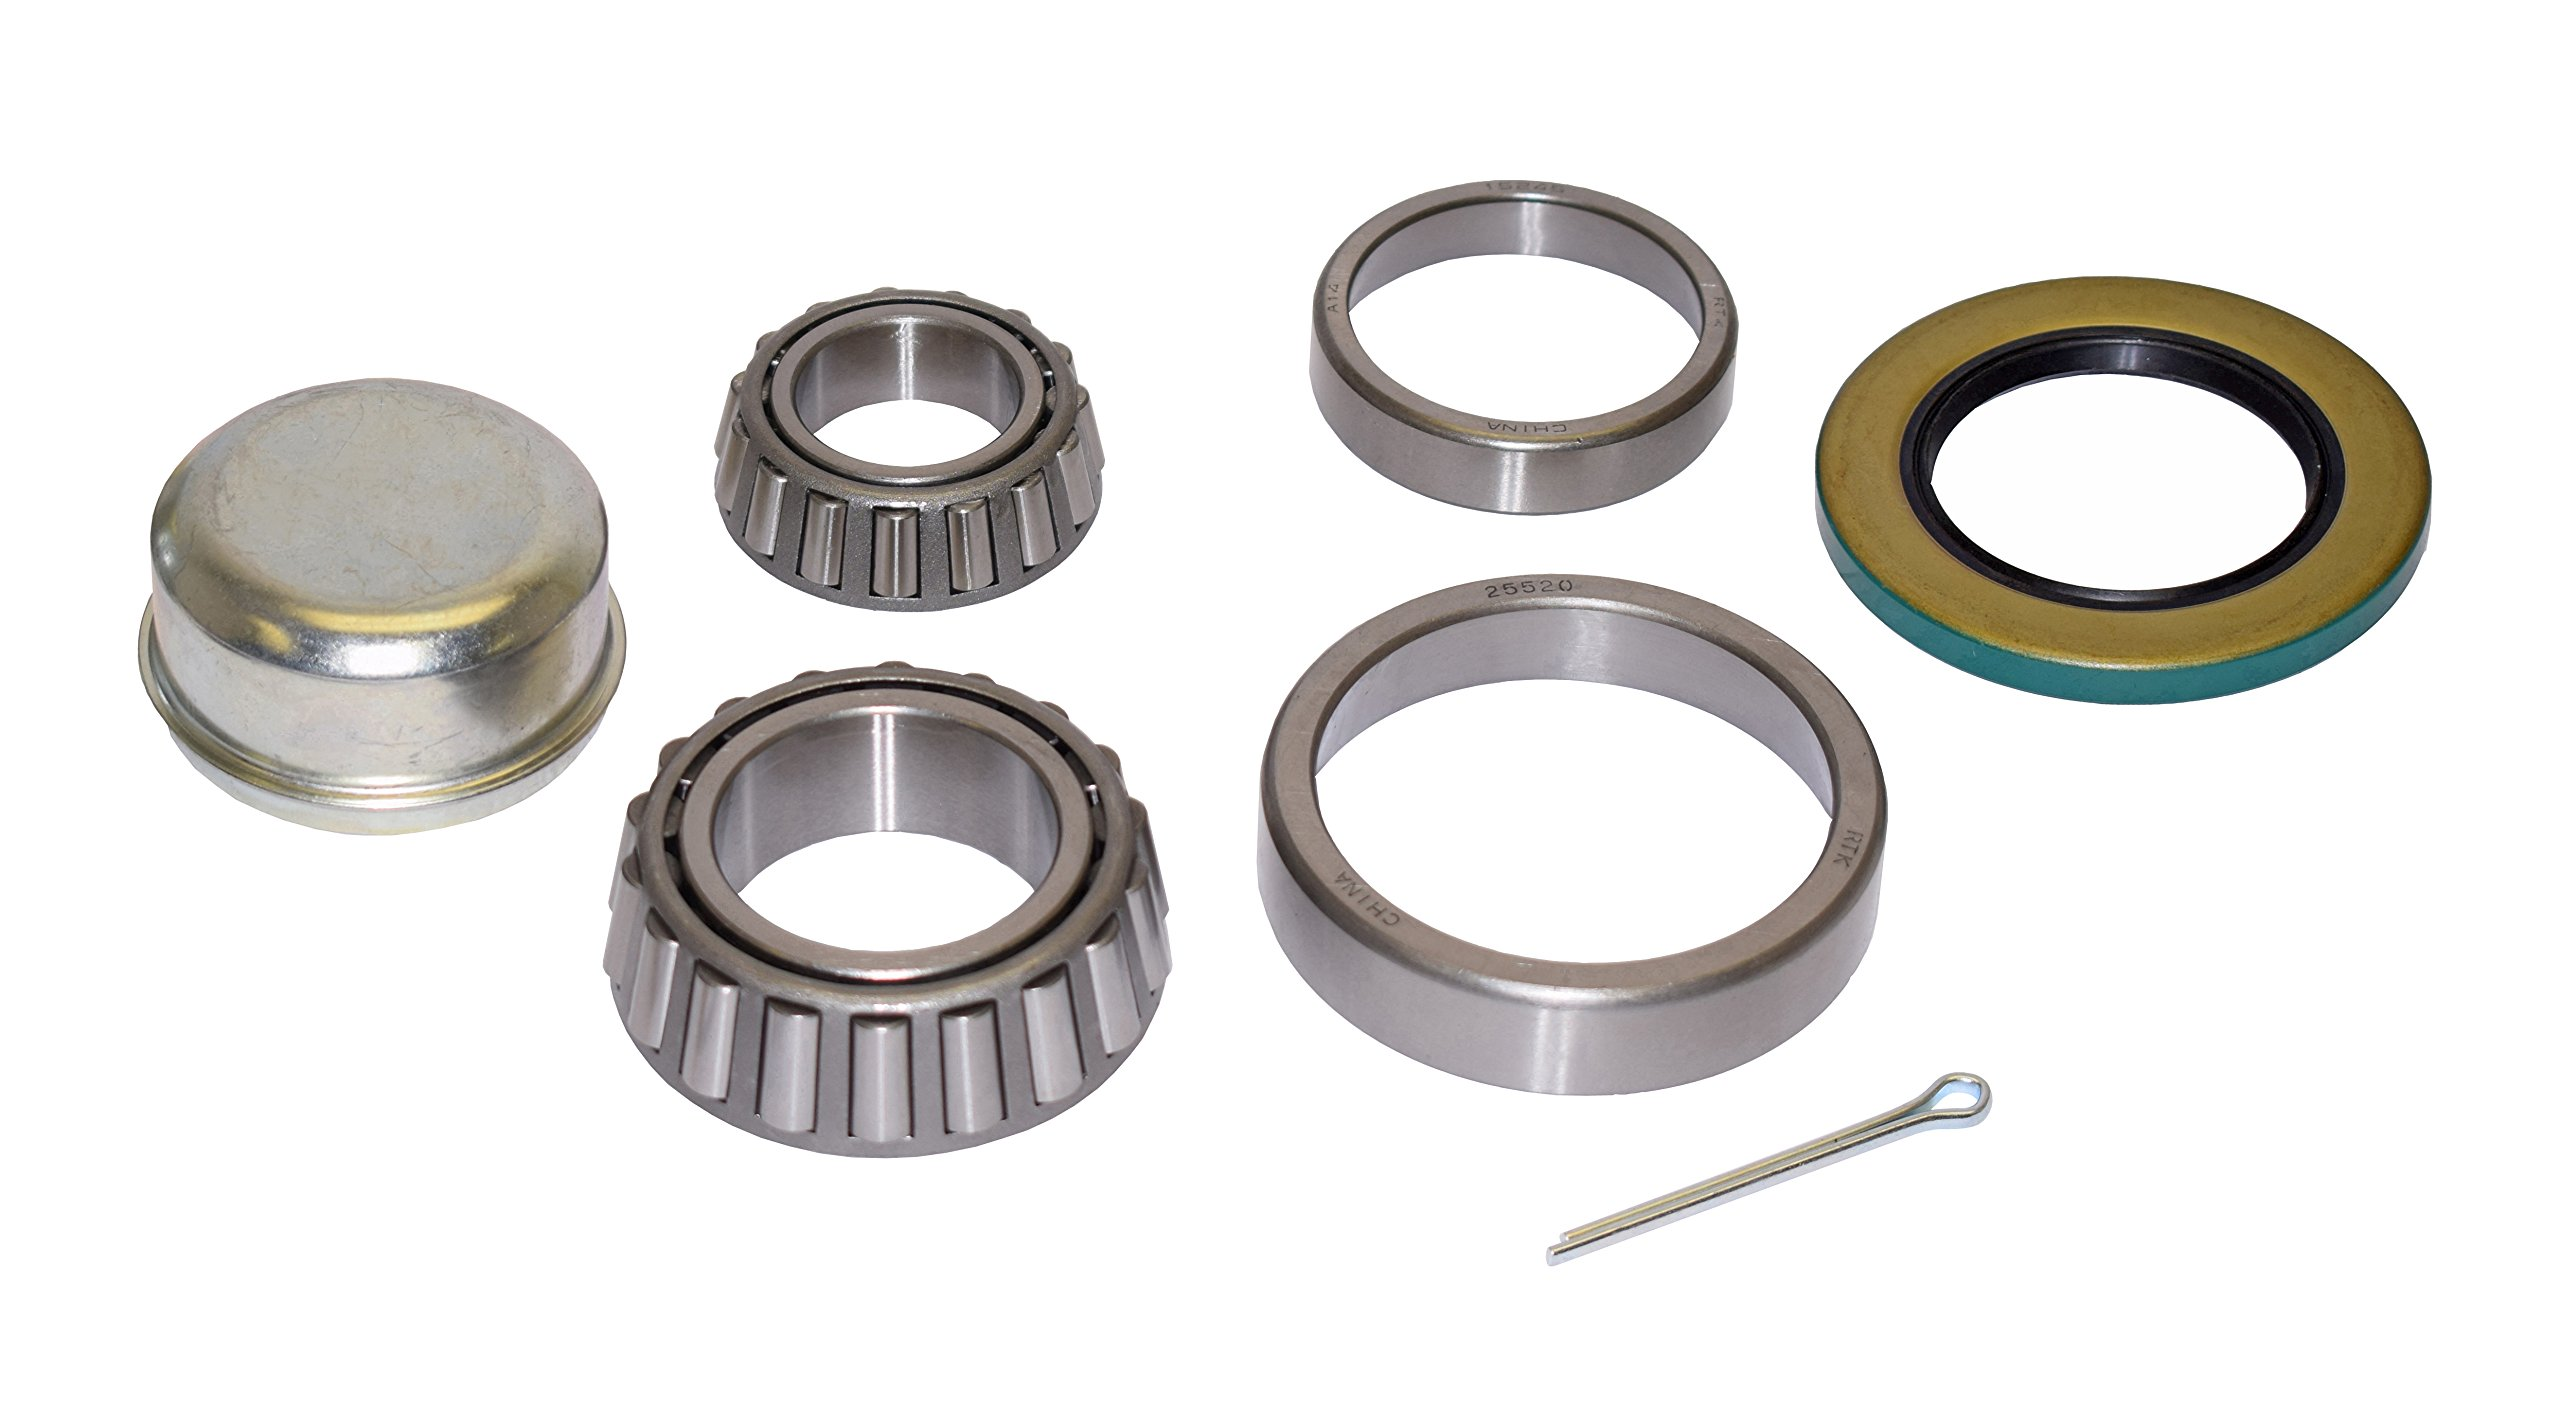 Trailer Bearing Repair Kit (280457) for 1-3/4 Inch to 1-1/4 Inch Tapered Spindle by Rigid Hitch